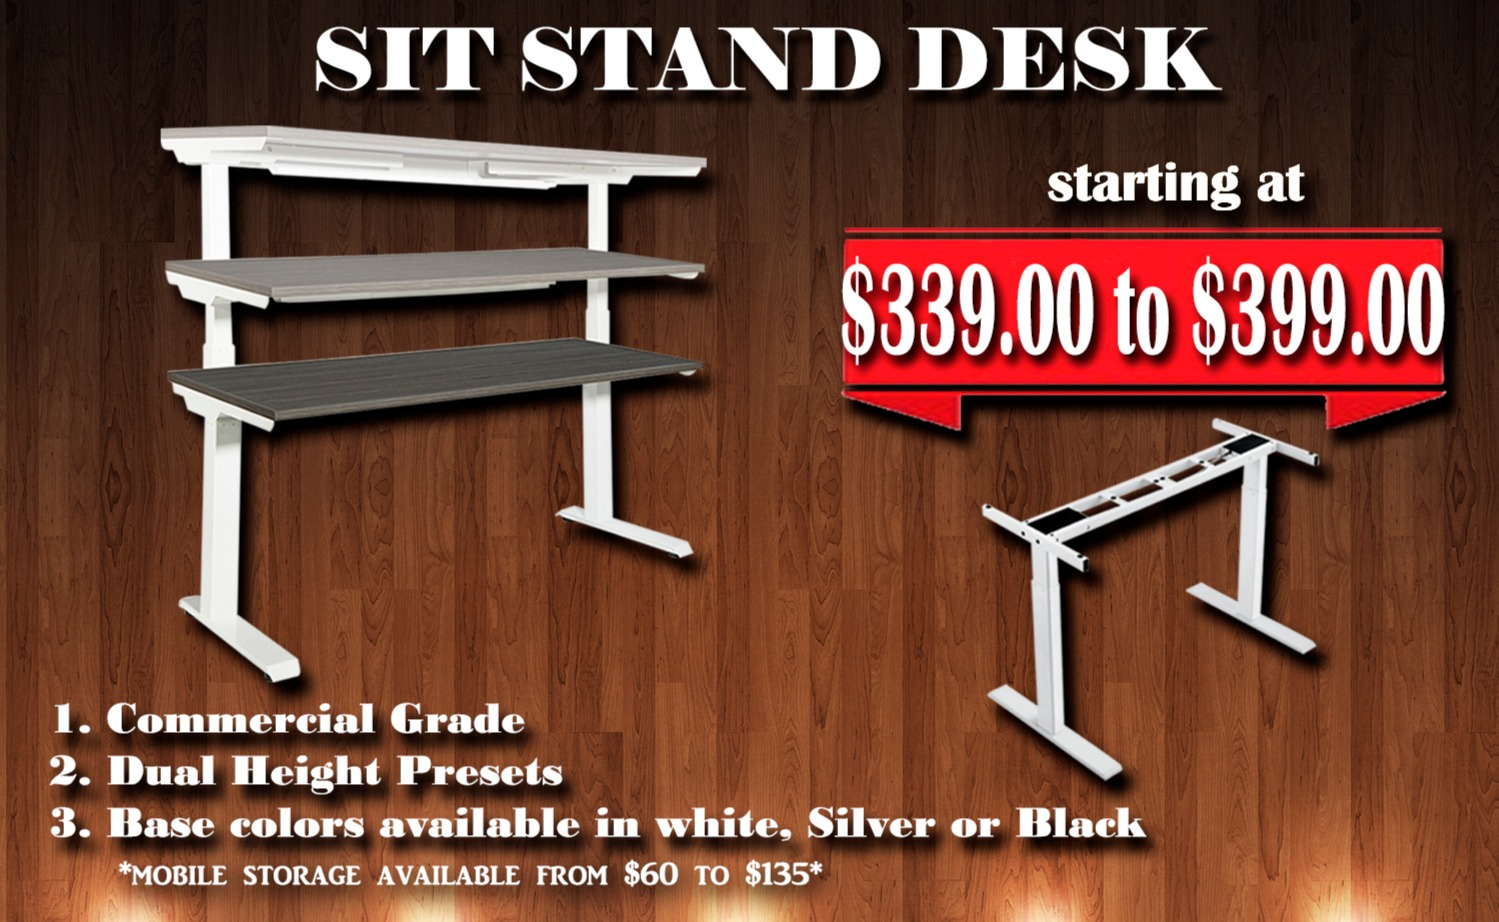 Sit Stand Desk SPECIAL